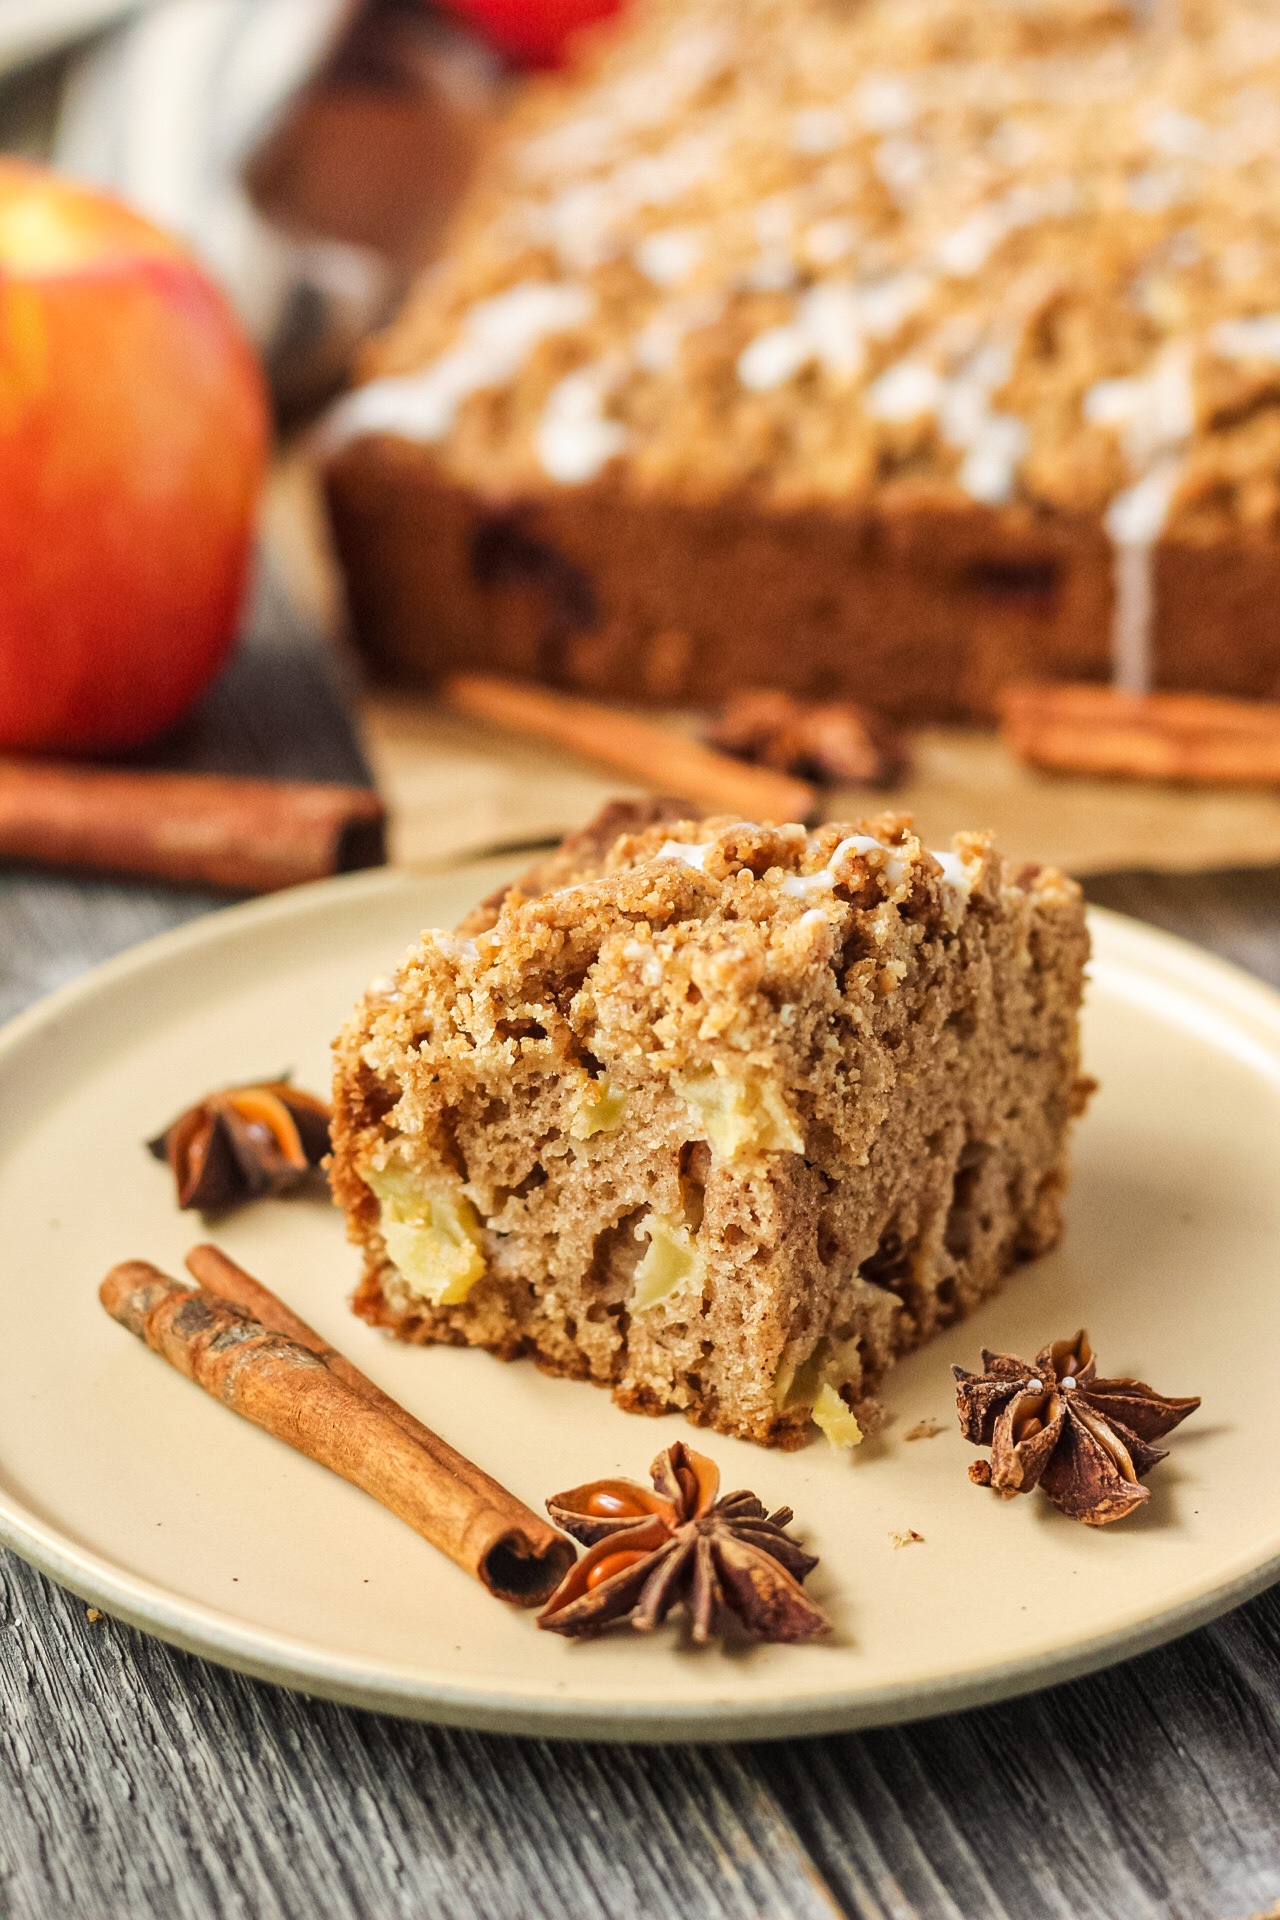 side shot of slice of apple crumb cake on a brown plate with apples and more cake in the background.